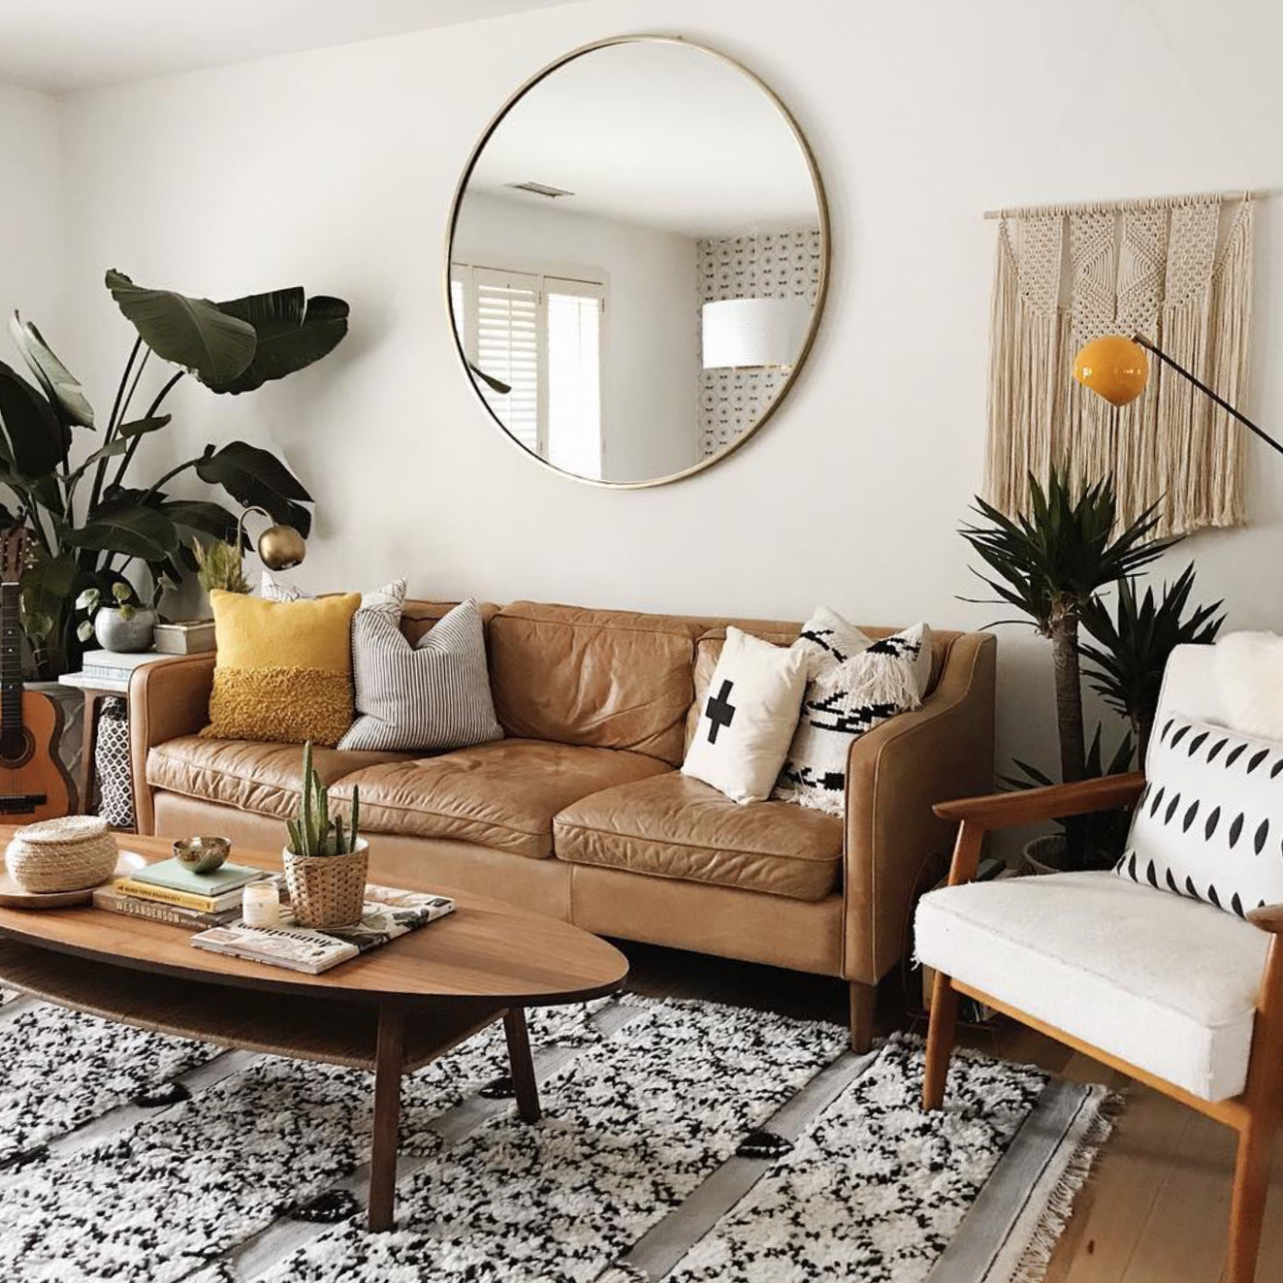 11 Apartment Decorating and Small Living Room Ideas  The Anastasia Co - Apartment Decorating Ideas Photos